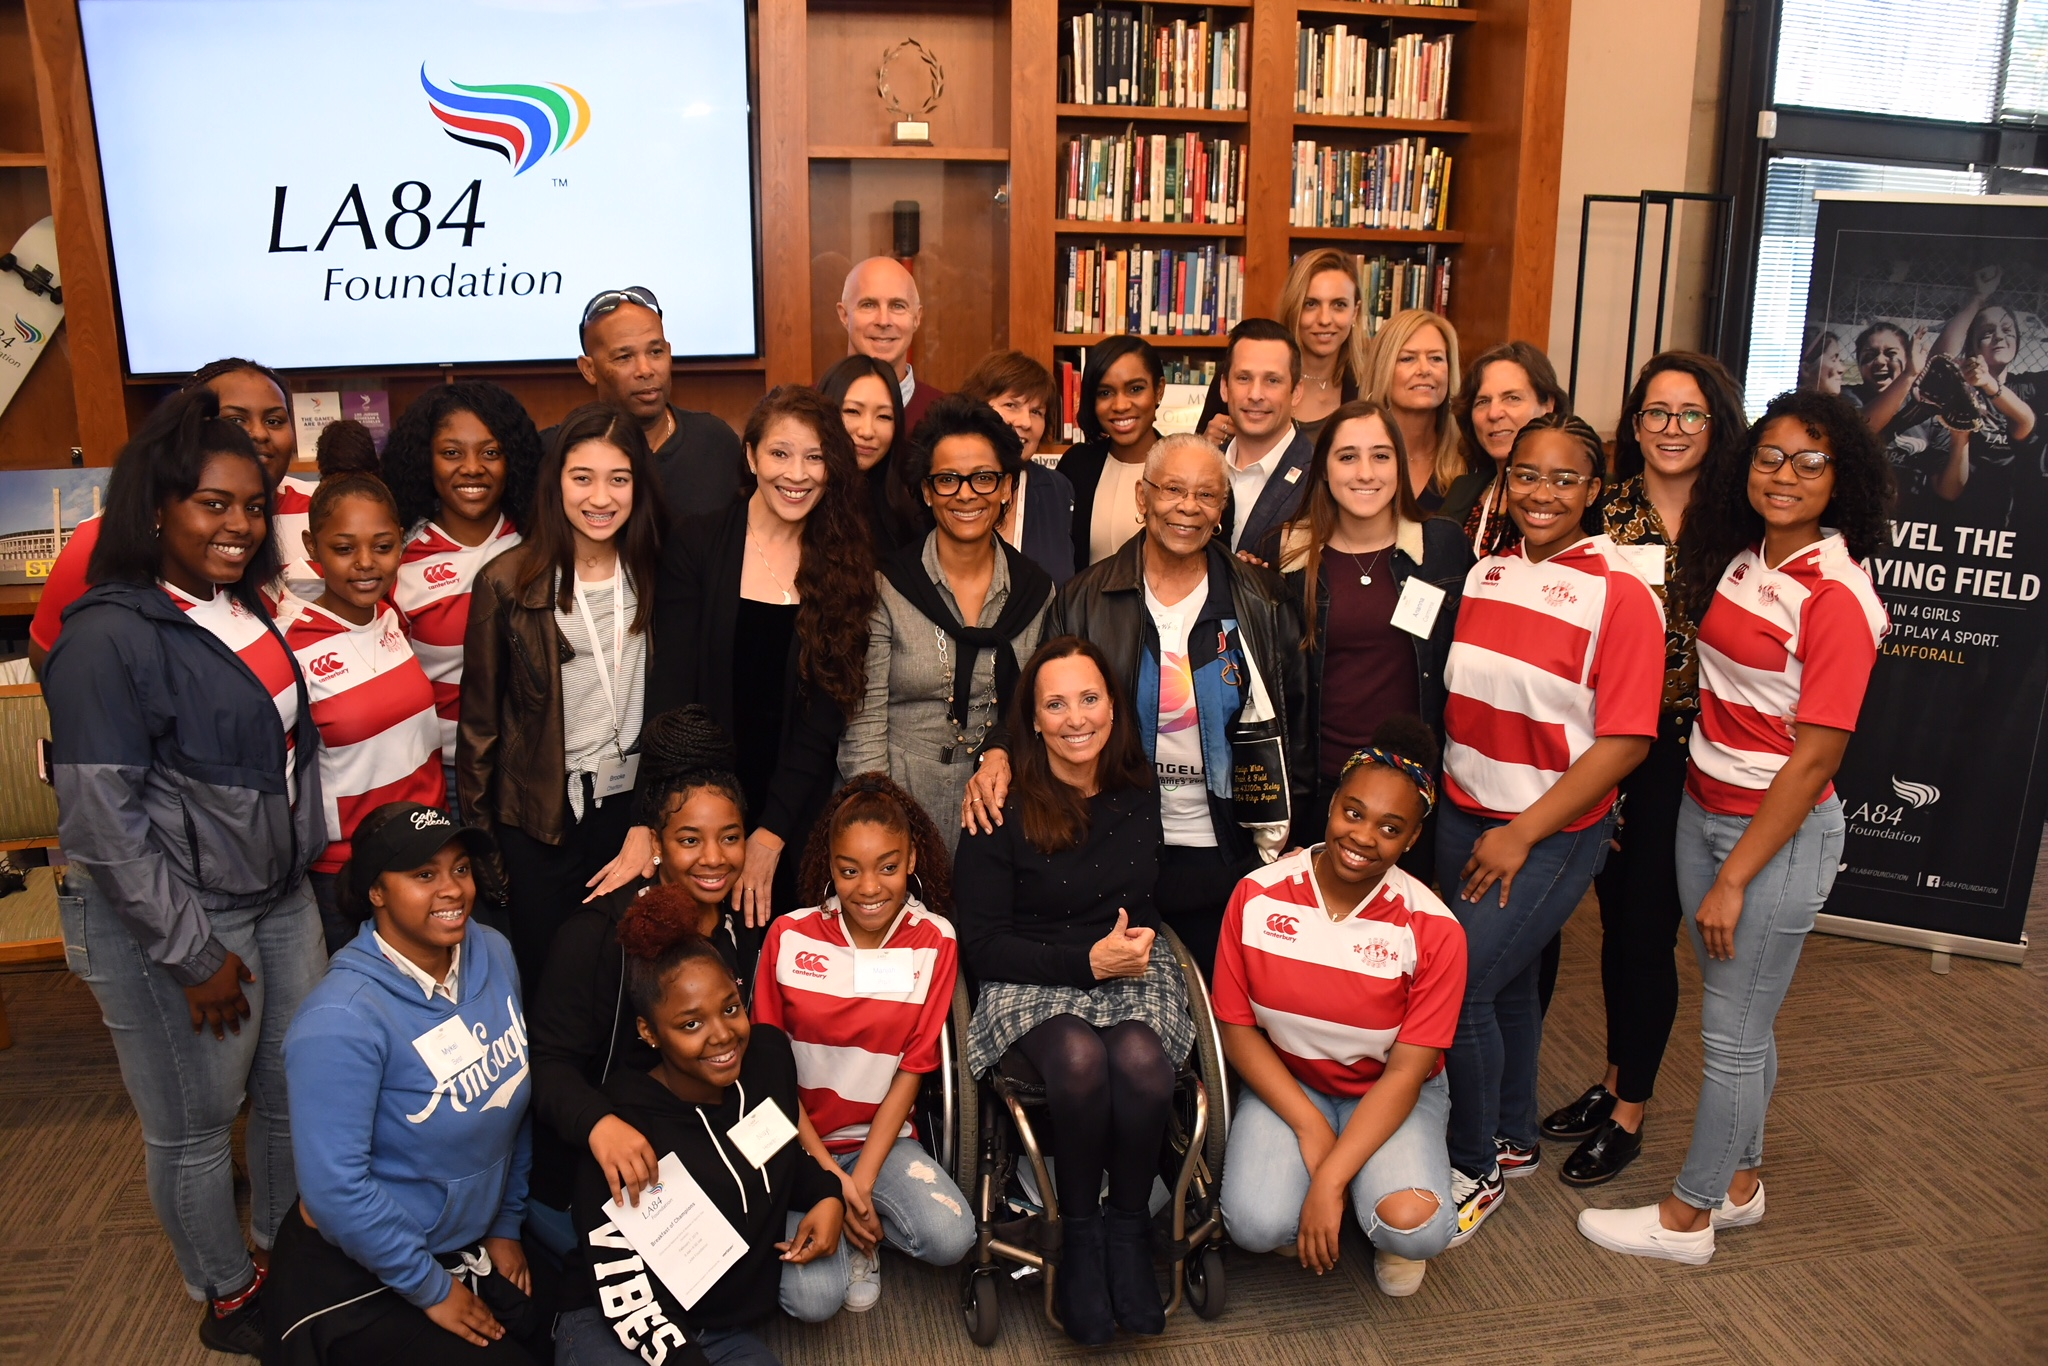 LA84 Hosts Inspirational National Girls & Women In Sports Day Panel